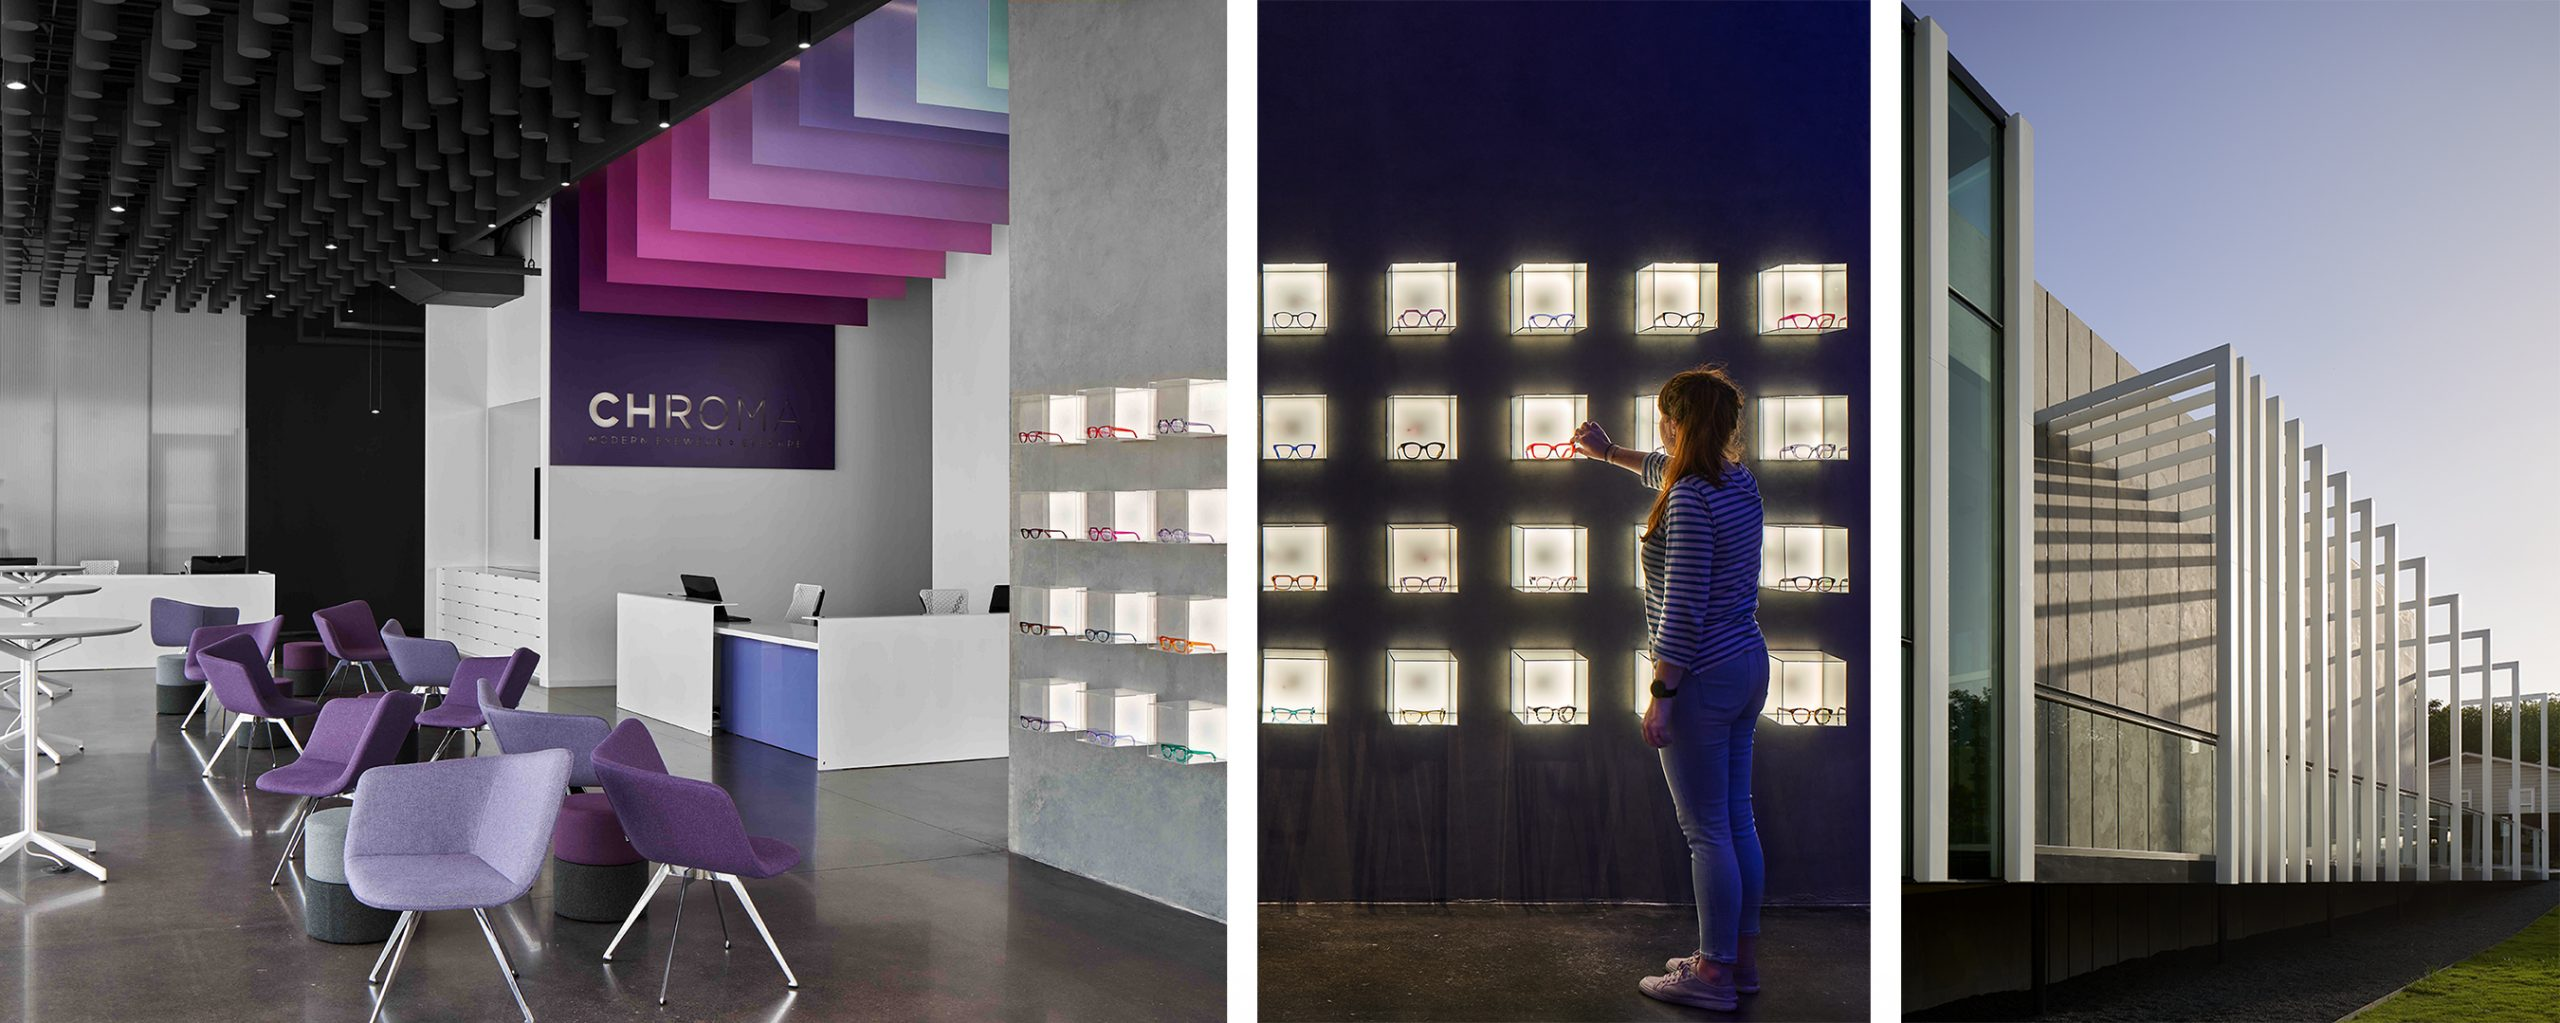 Using a minimalist aesthetic, Chroma Modern found unique ways to display eyewear, often a difficult product to merchandise.